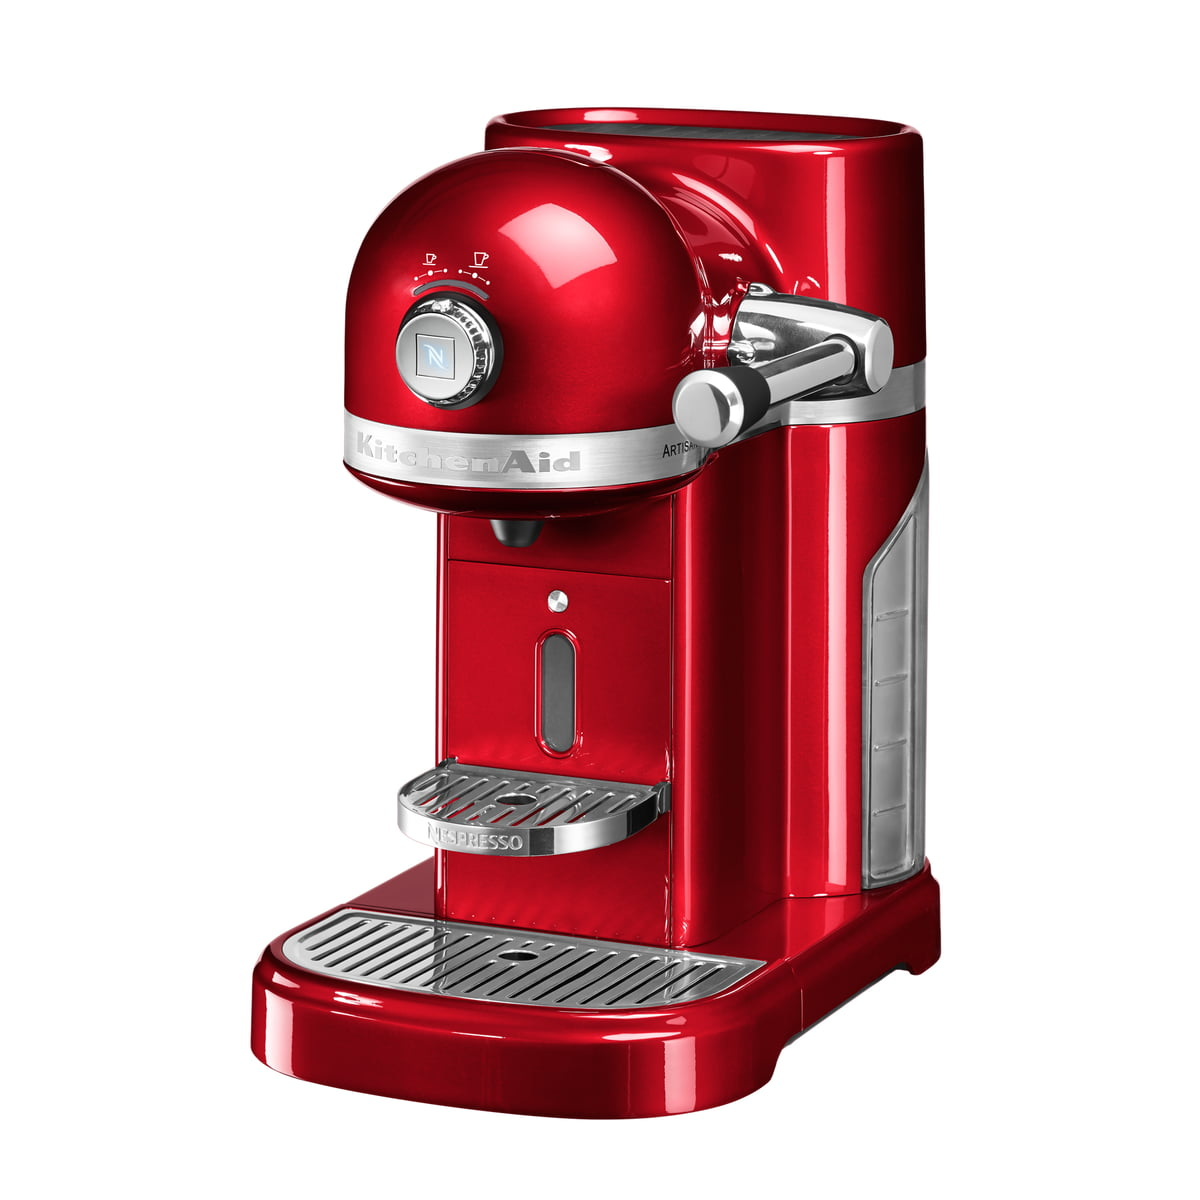 The Artisan Nespresso by KitchenAid in the shop on kitchenaid artisan stand mixer, kitchenaid mixer, kitchenaid stand mixer, kitchenaid artisan mixer,